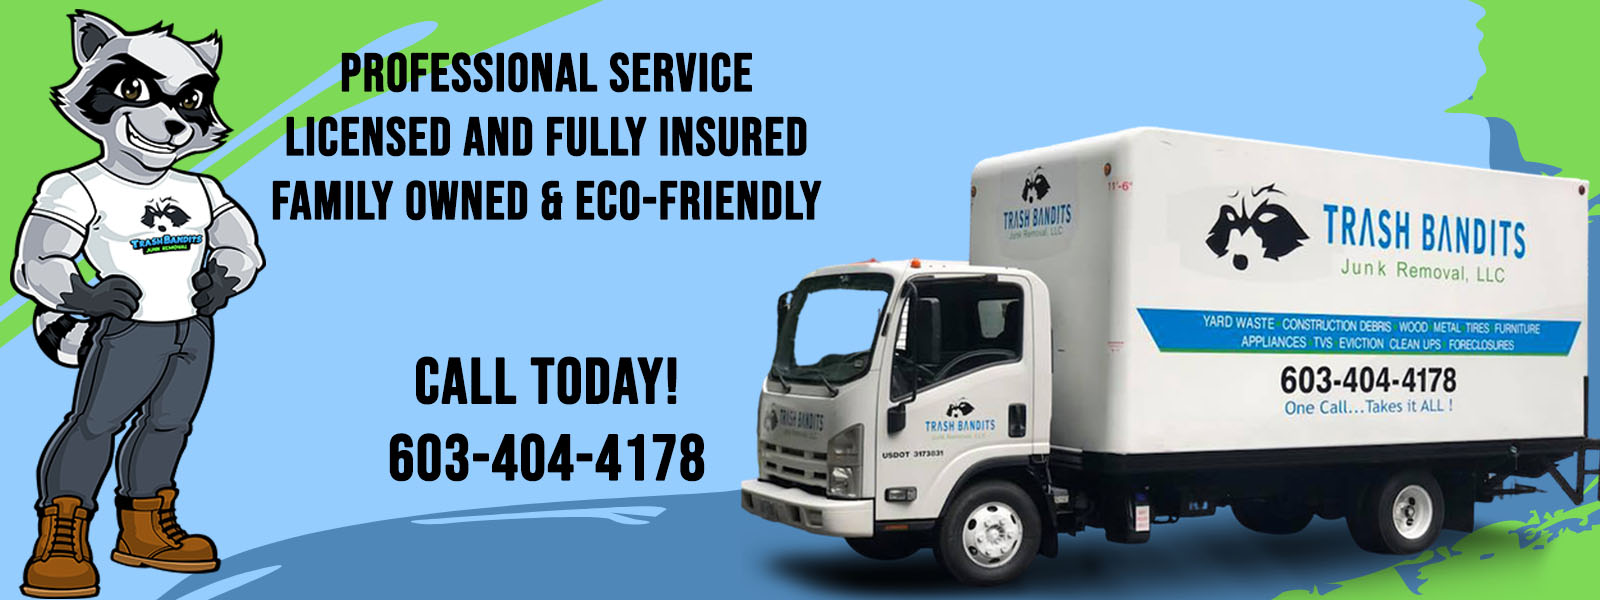 Professional Servicem Fully Insured, Family Owned